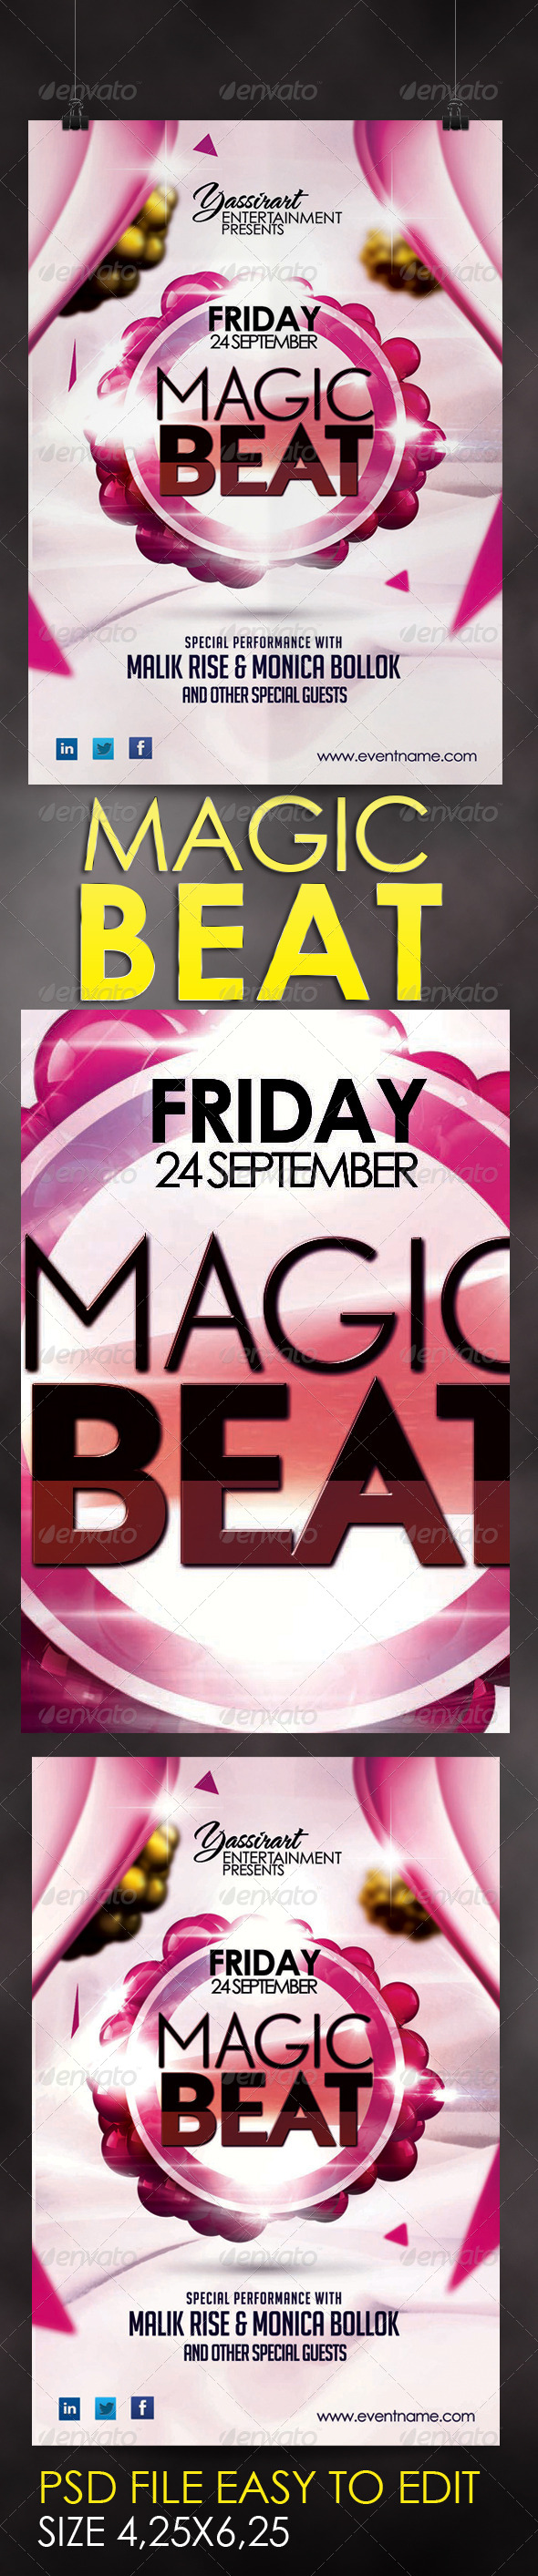 GraphicRiver Magic Beat Flyer Template 5691066